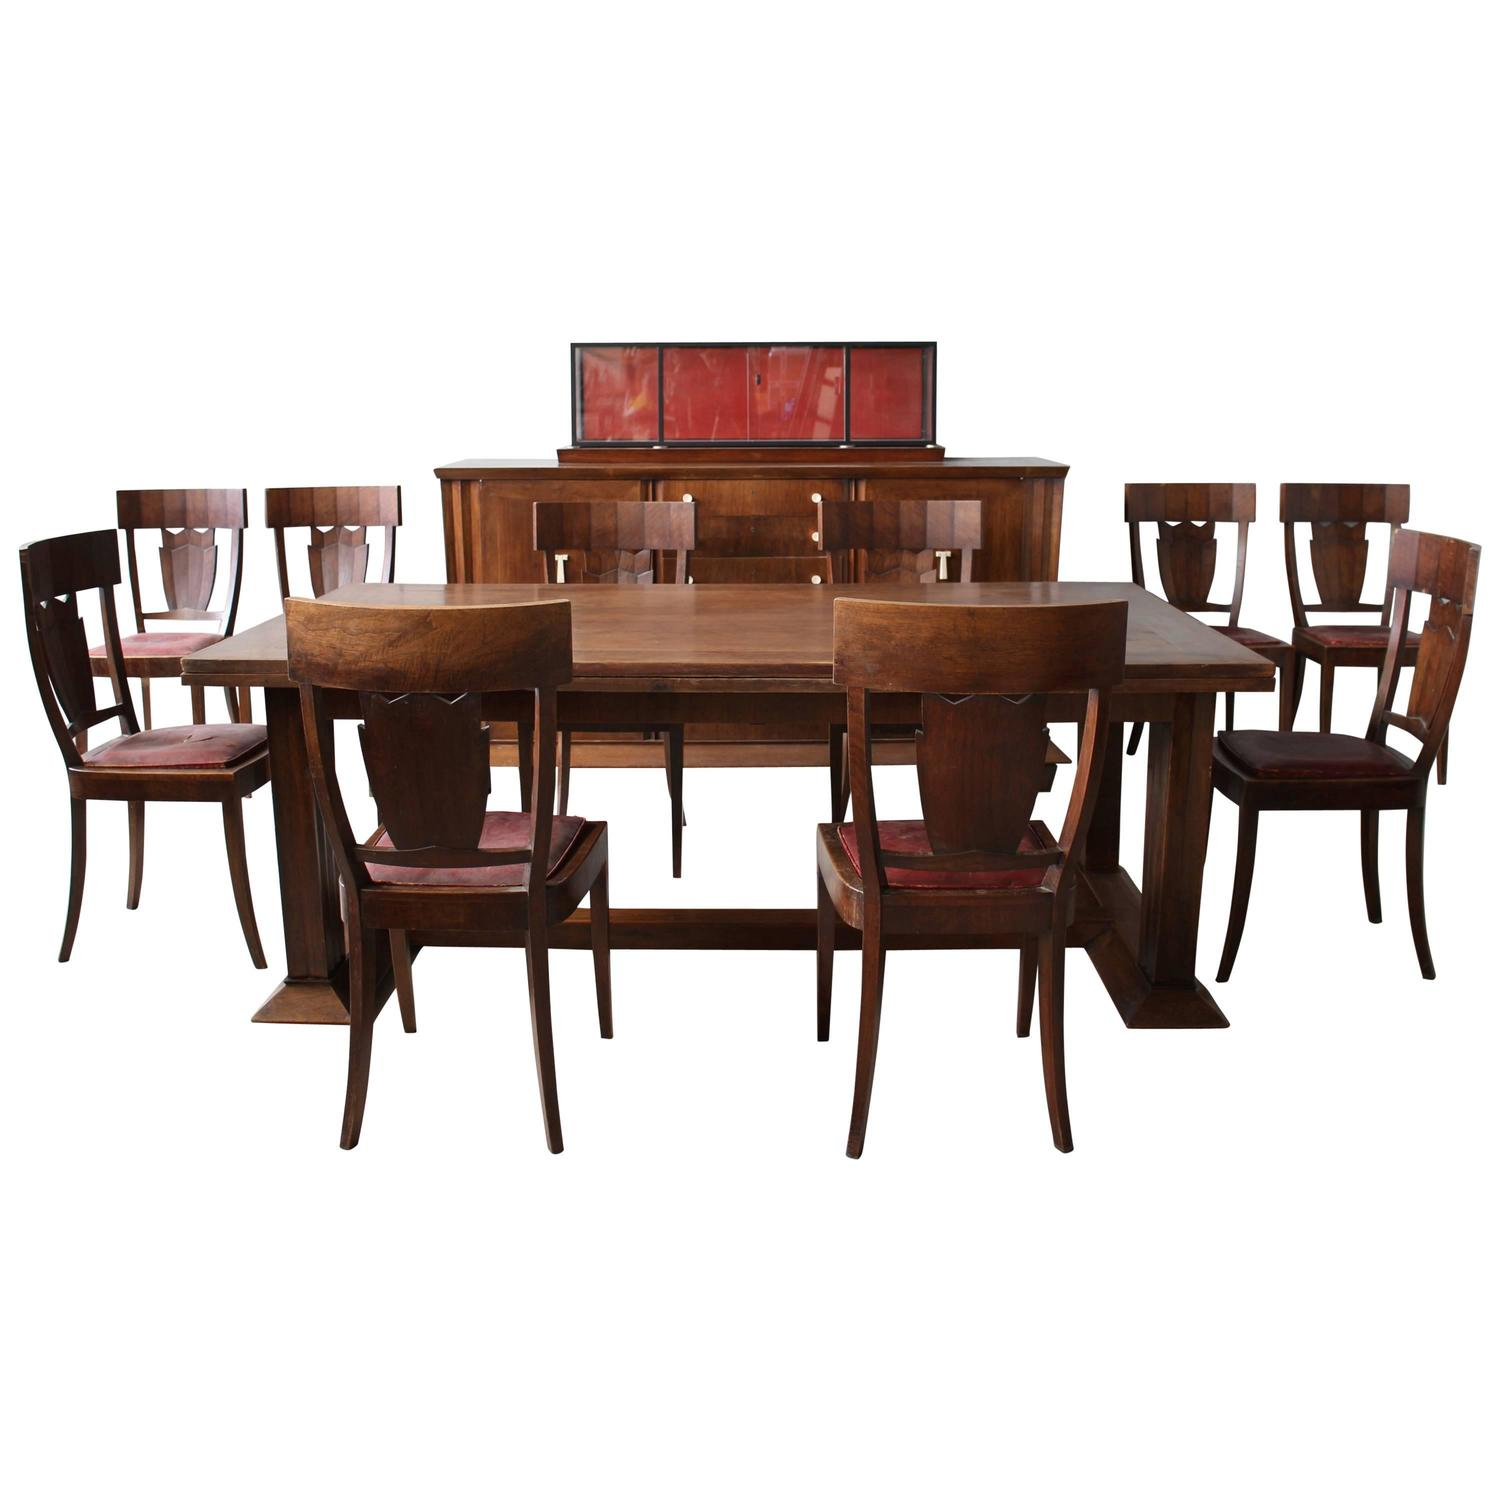 Rare french art deco walnut dining room set by jean for Dining room paintings sale